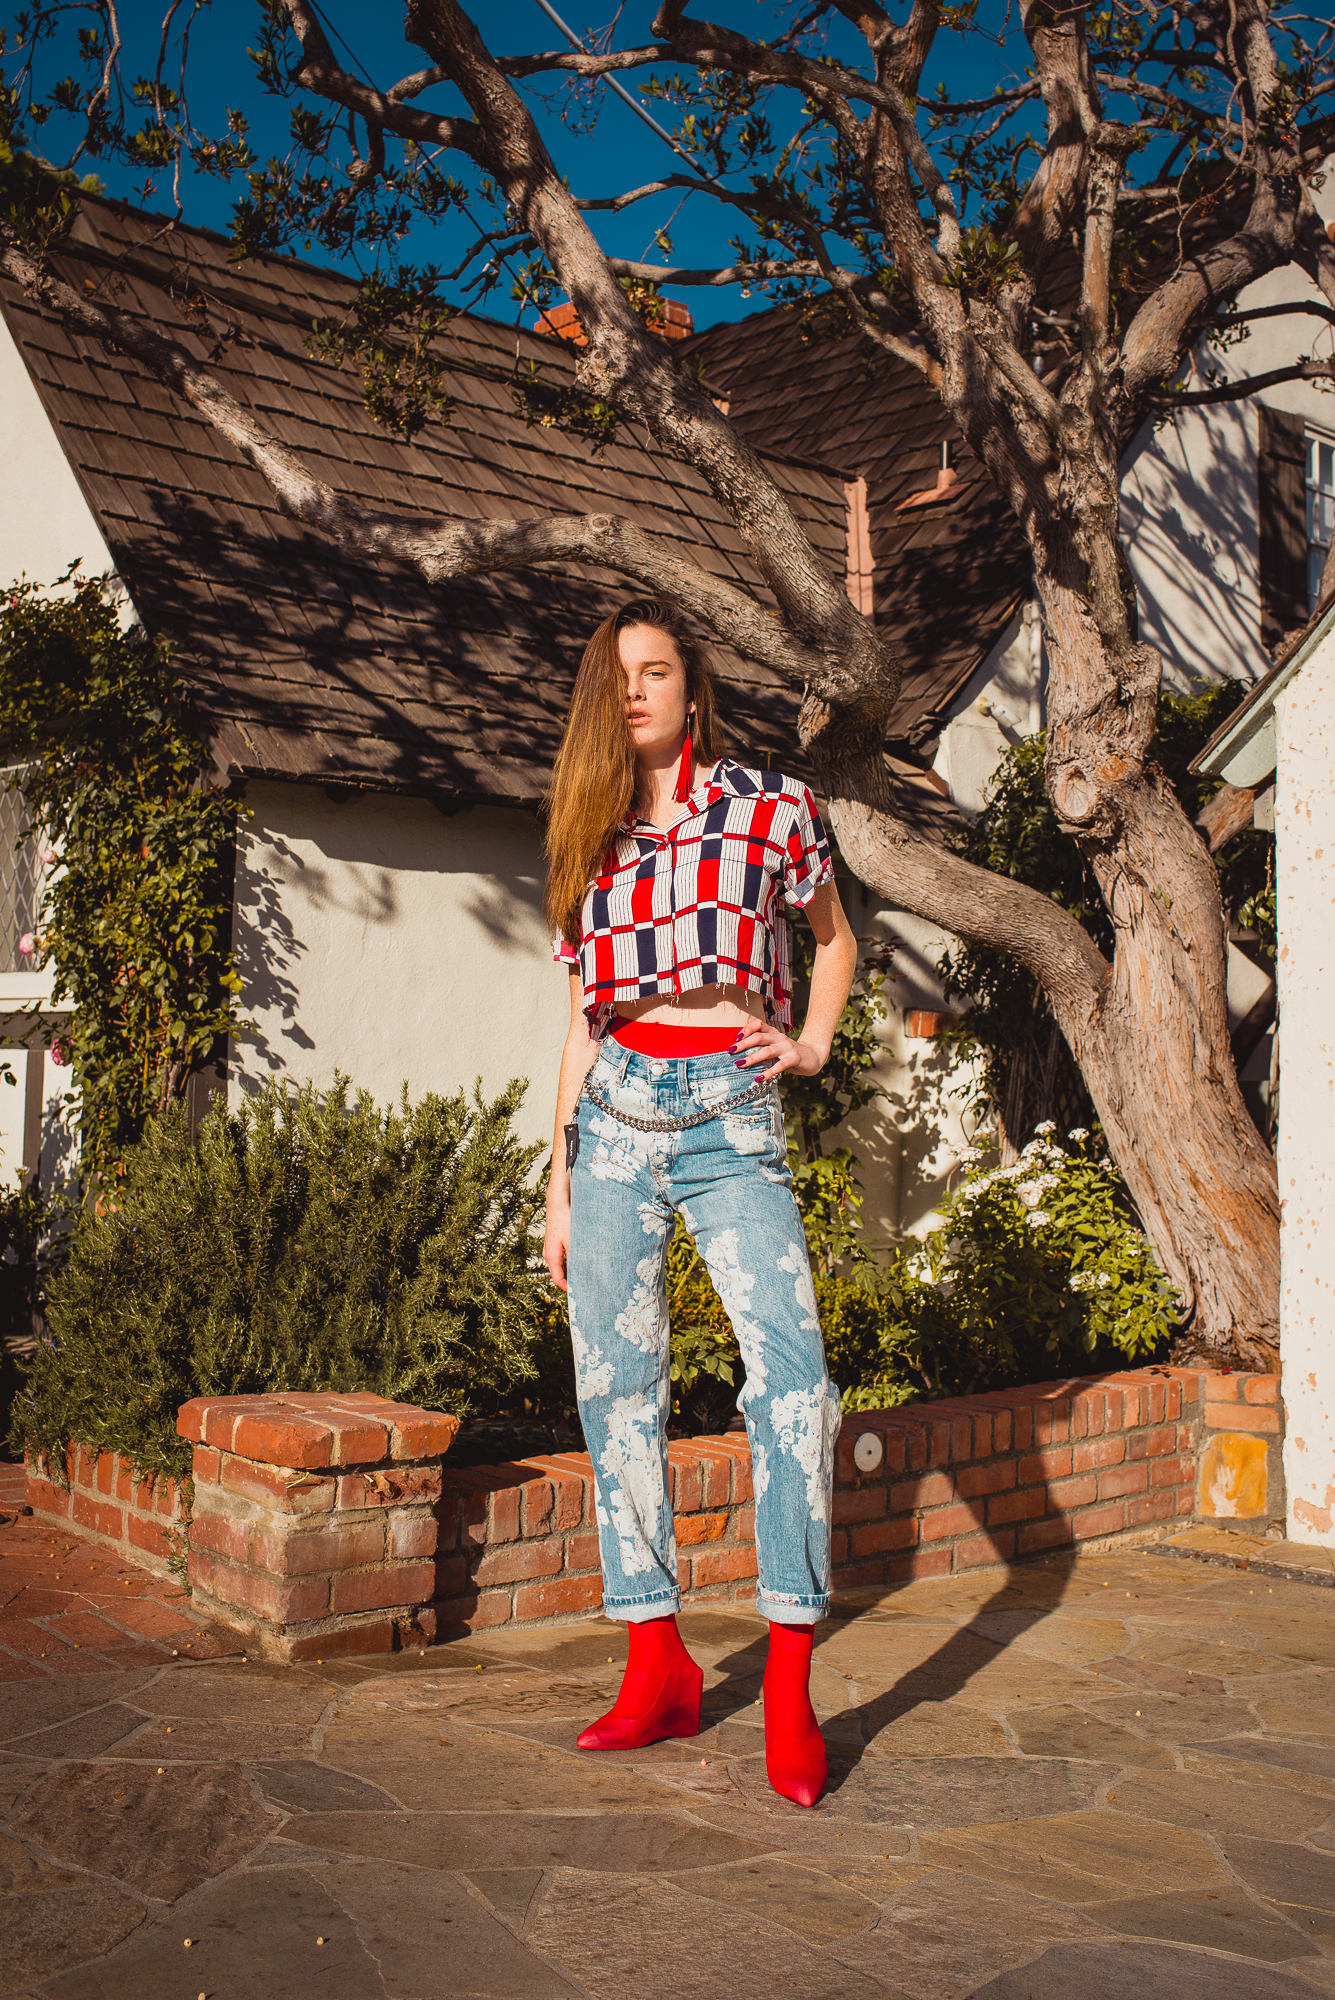 Sunny Delight - Editorial by Helen Merwin